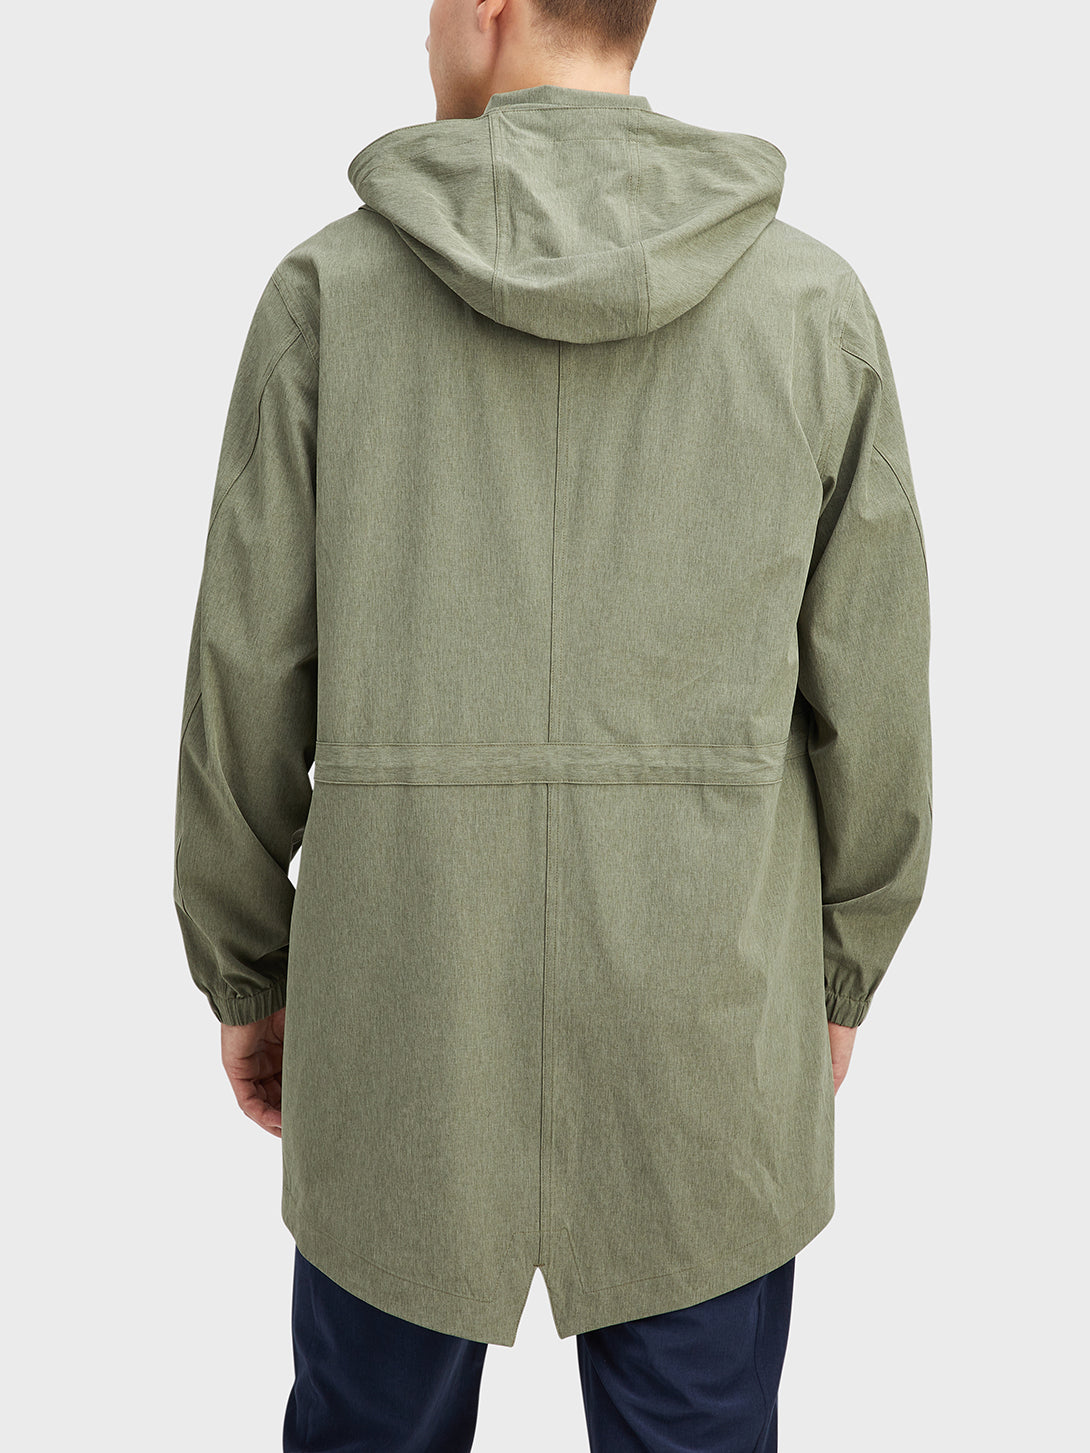 Green Heather Mariner Parka Men's polyester jackets ONS Clothing